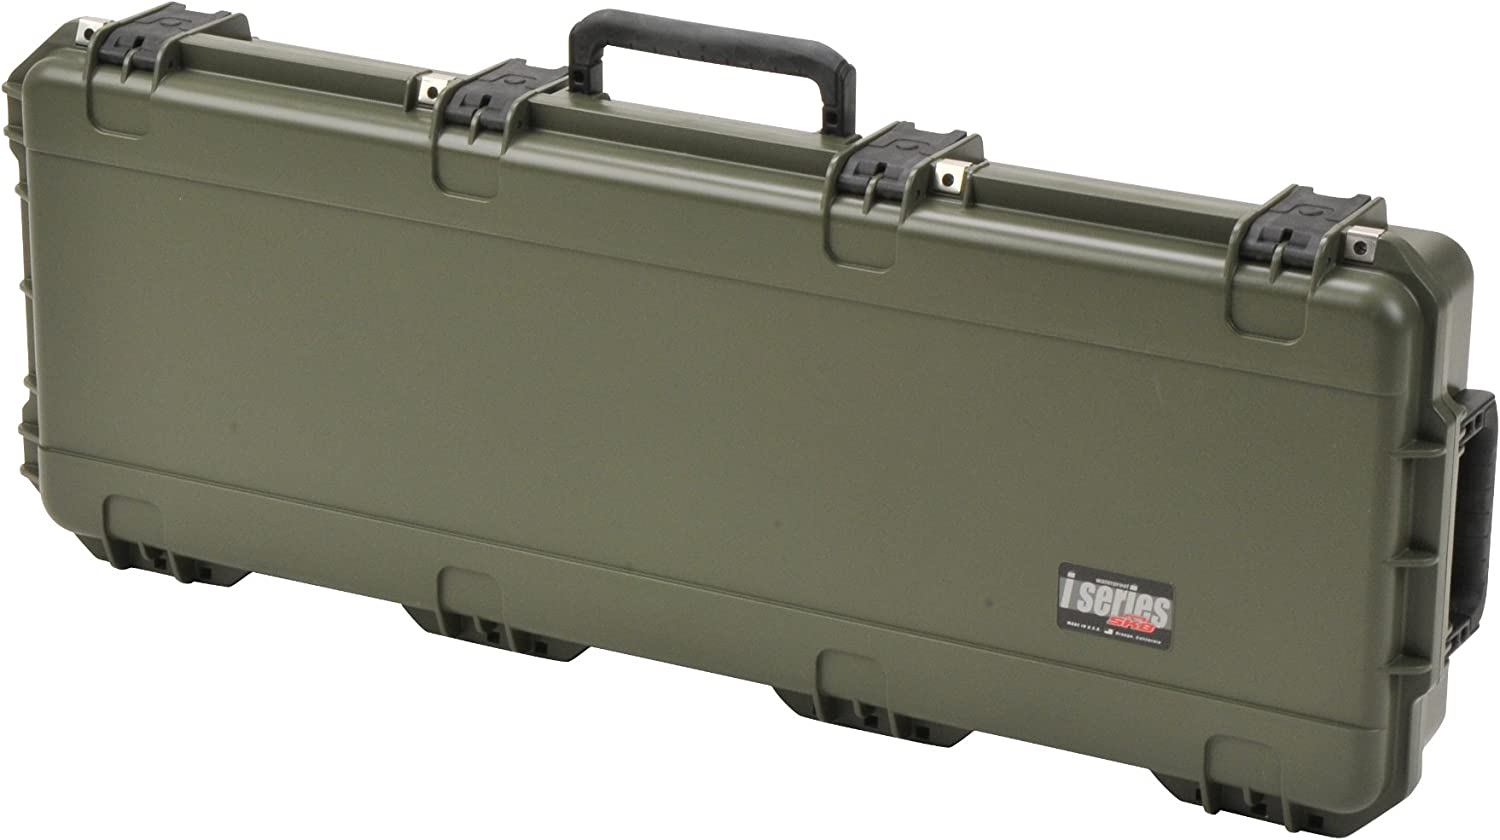 OD Green SKB Parallel Limb Bow Case 3i-4214-PL-M with 2 TSA Locking latches CVPKG Presents